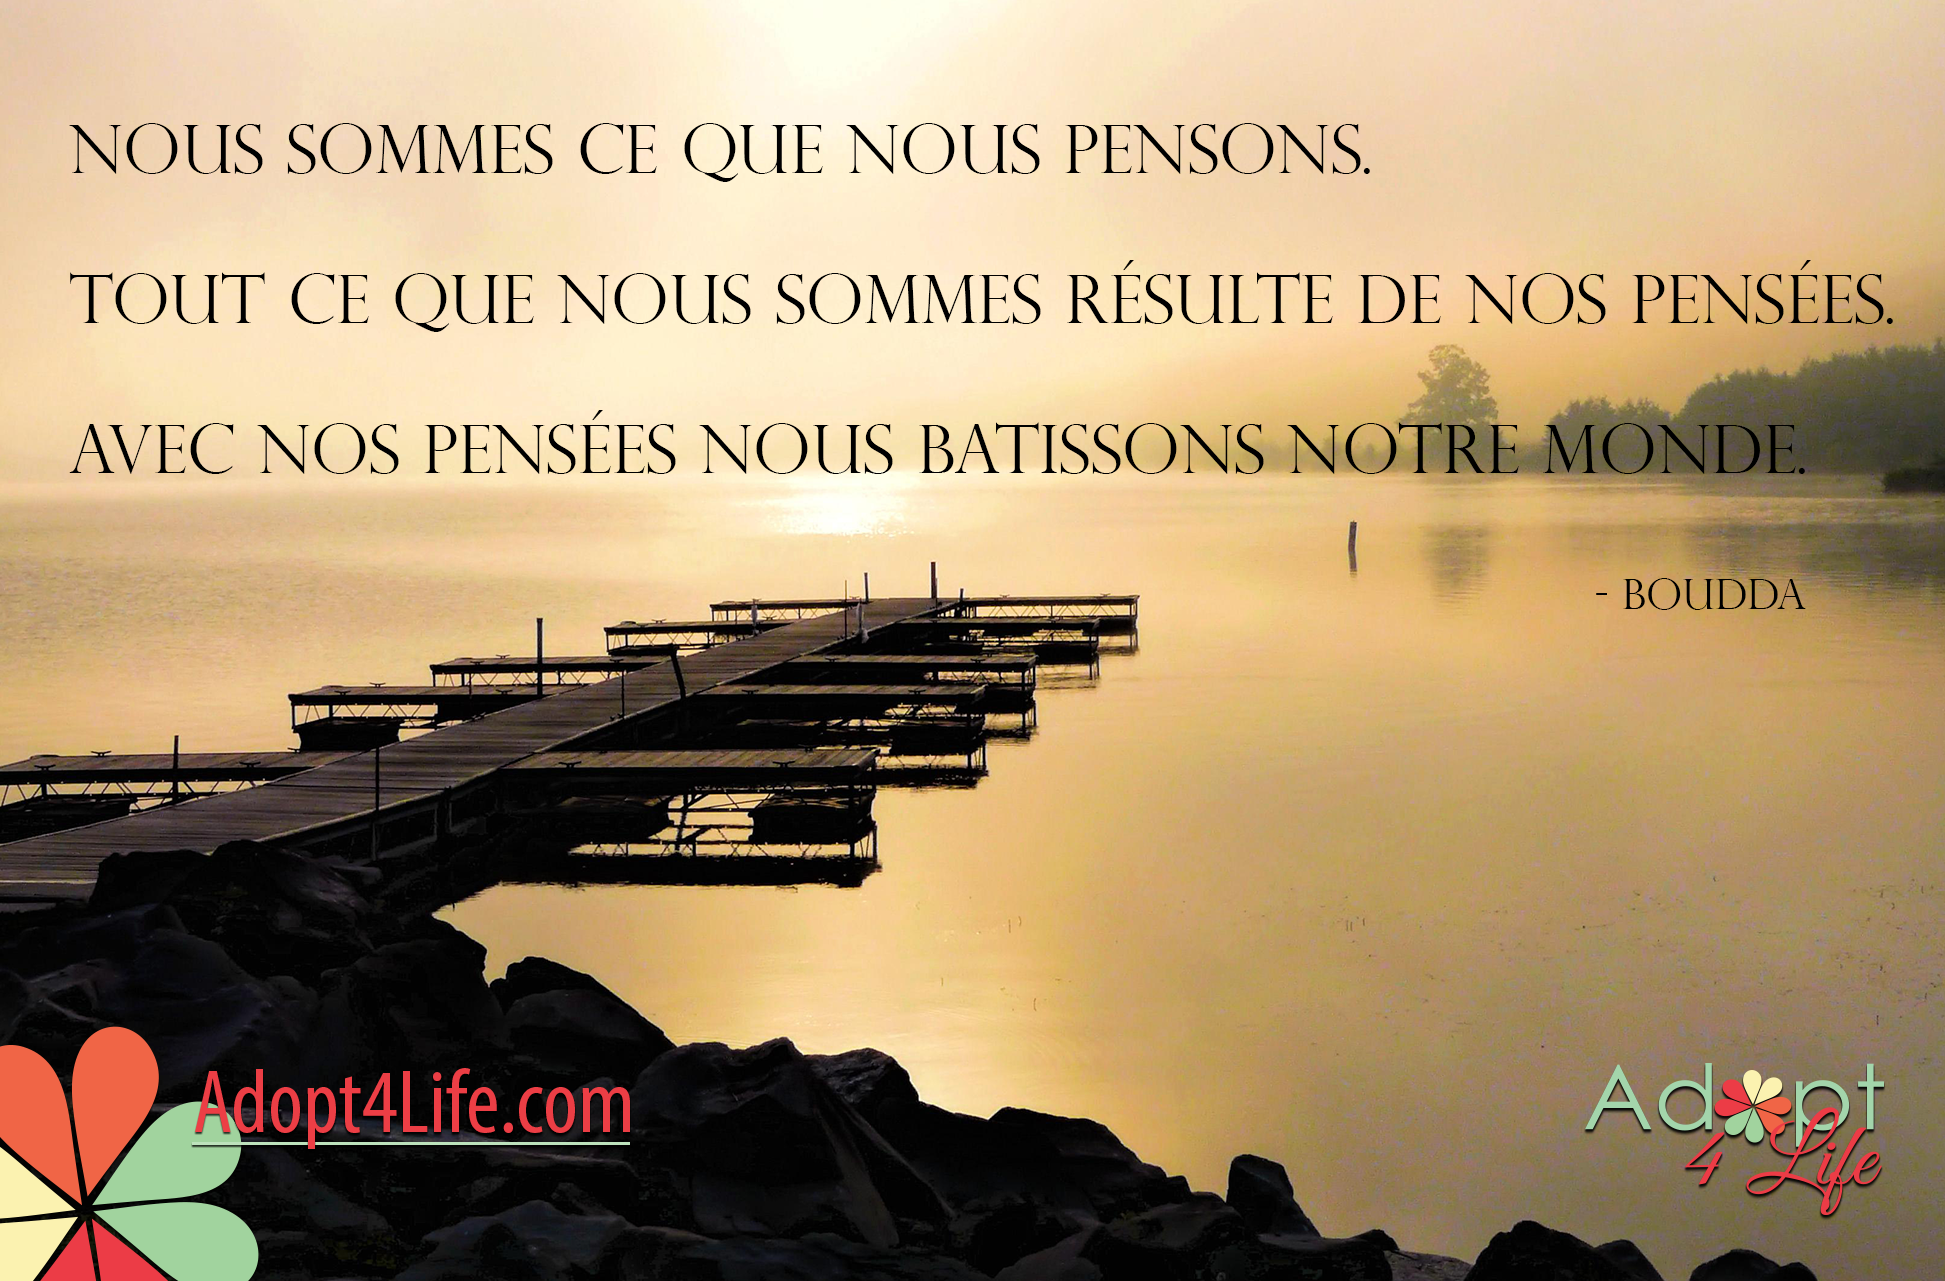 Facebook_AdoptionQuote_French_033_Dec2014_png.png